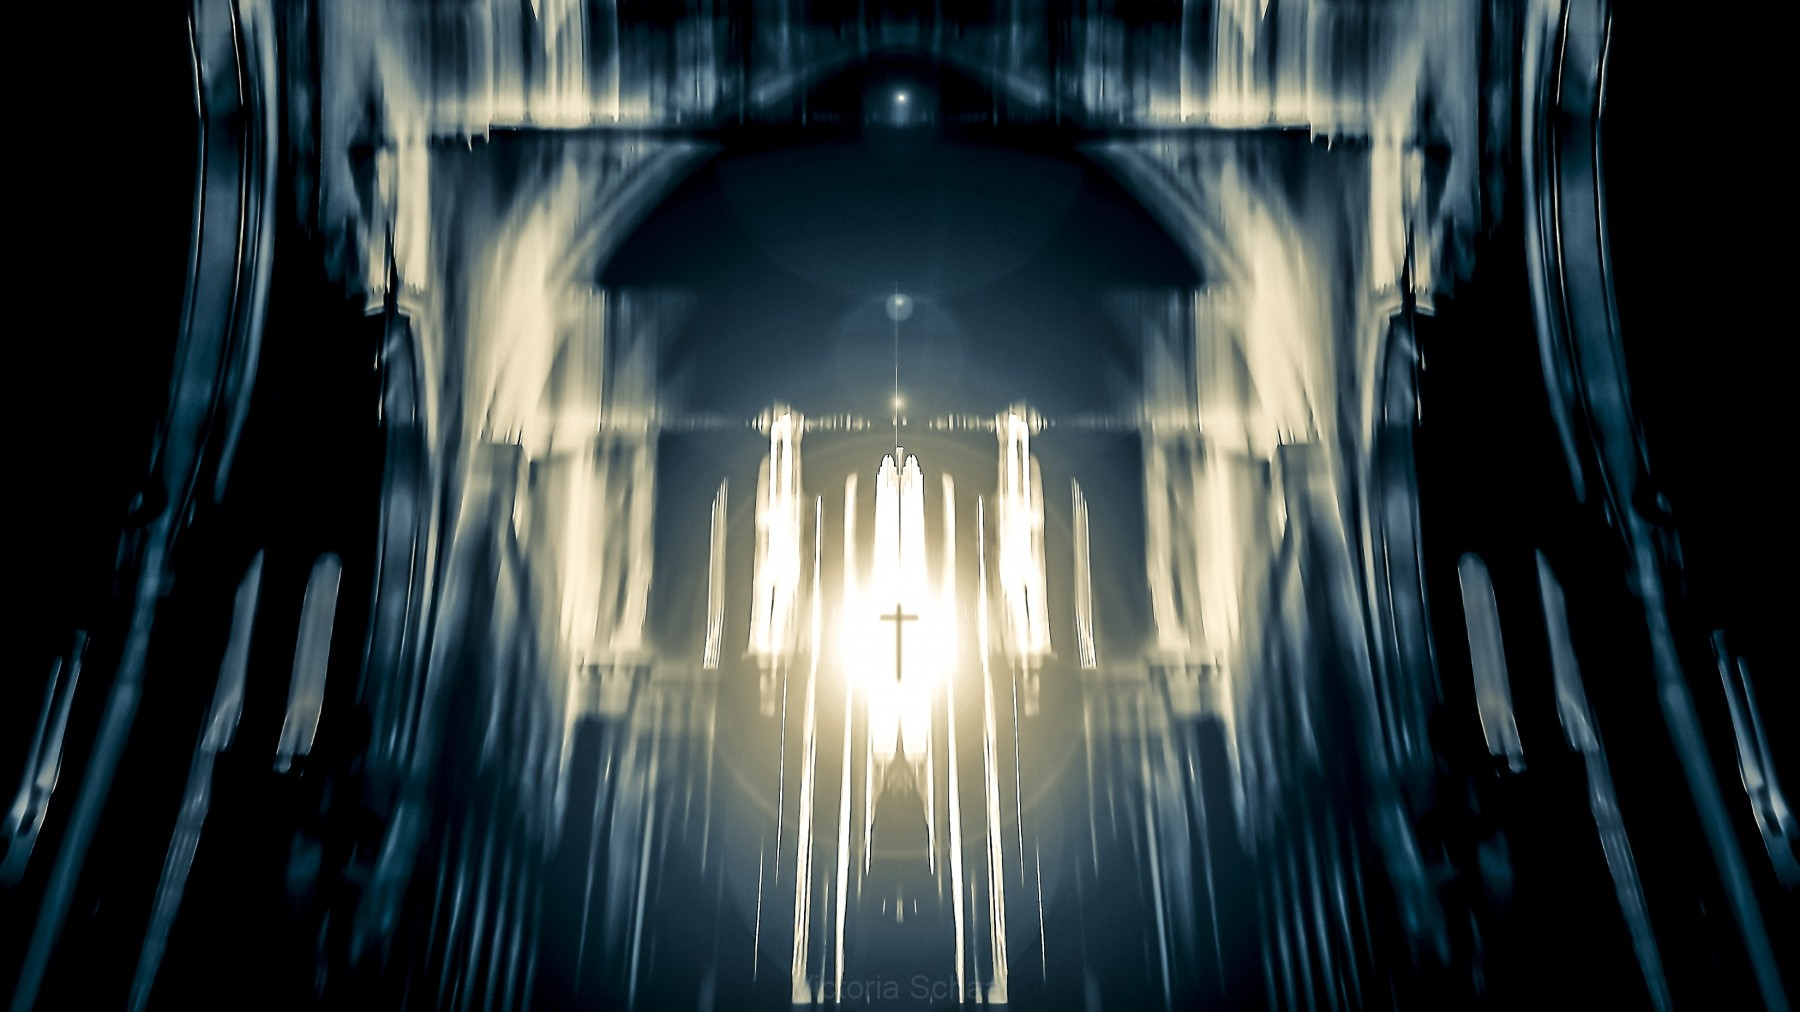 Symbolic image of Christian cross emerging in light from the window of a church